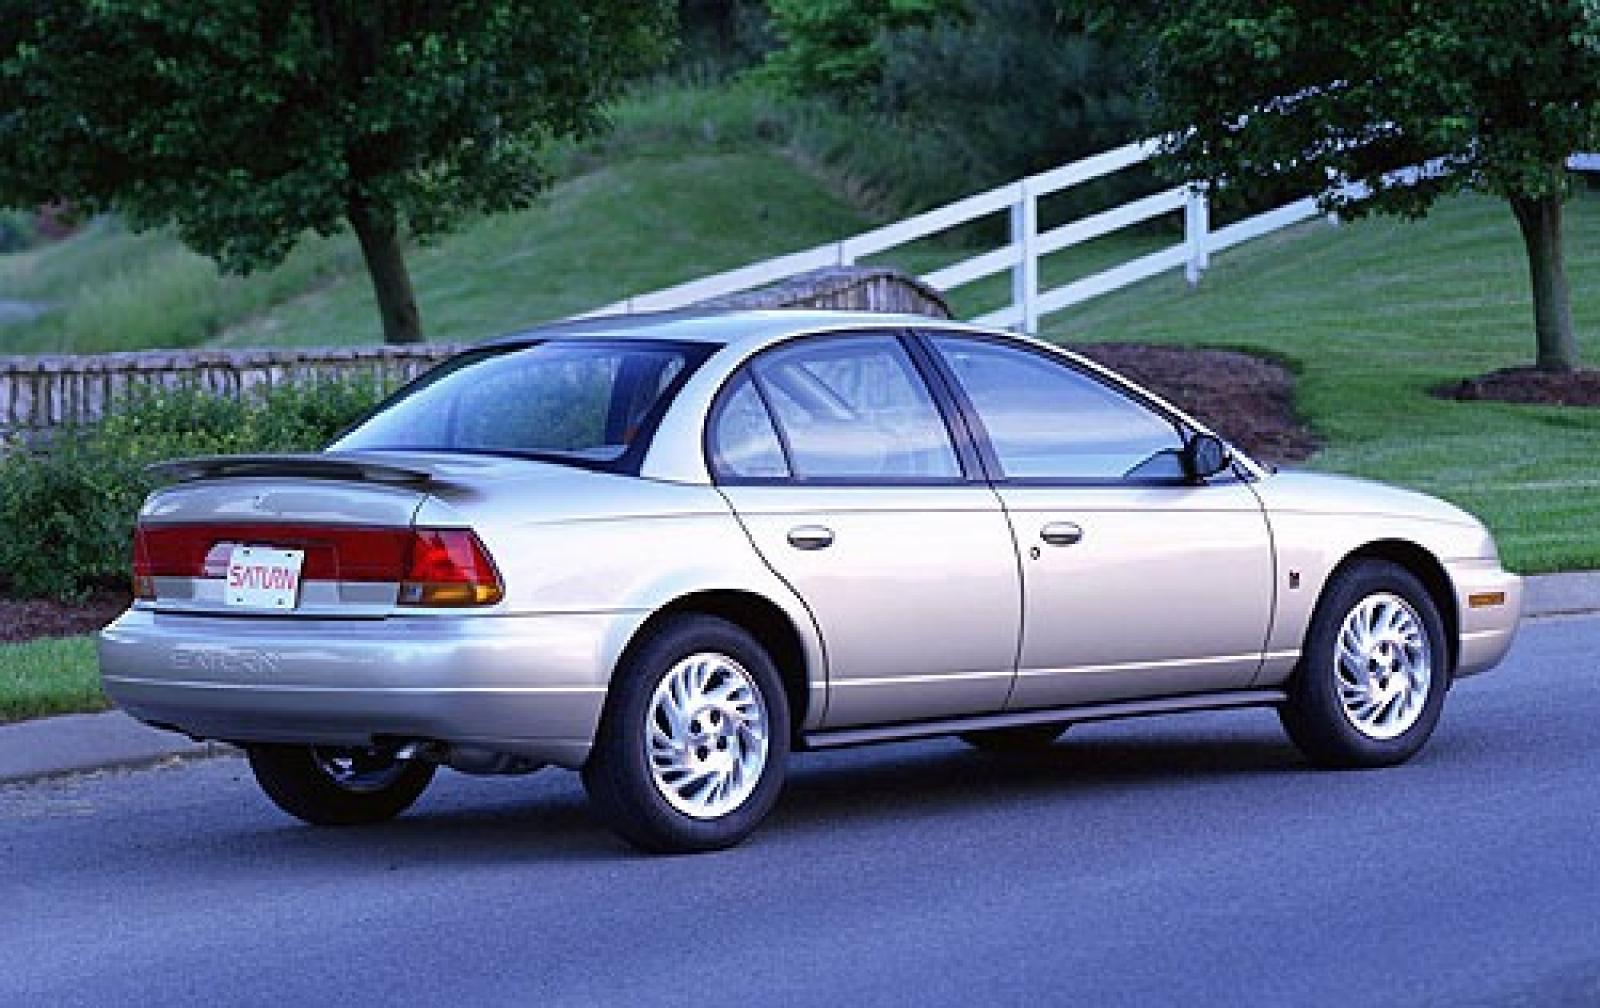 hight resolution of 2001 saturn s series 8